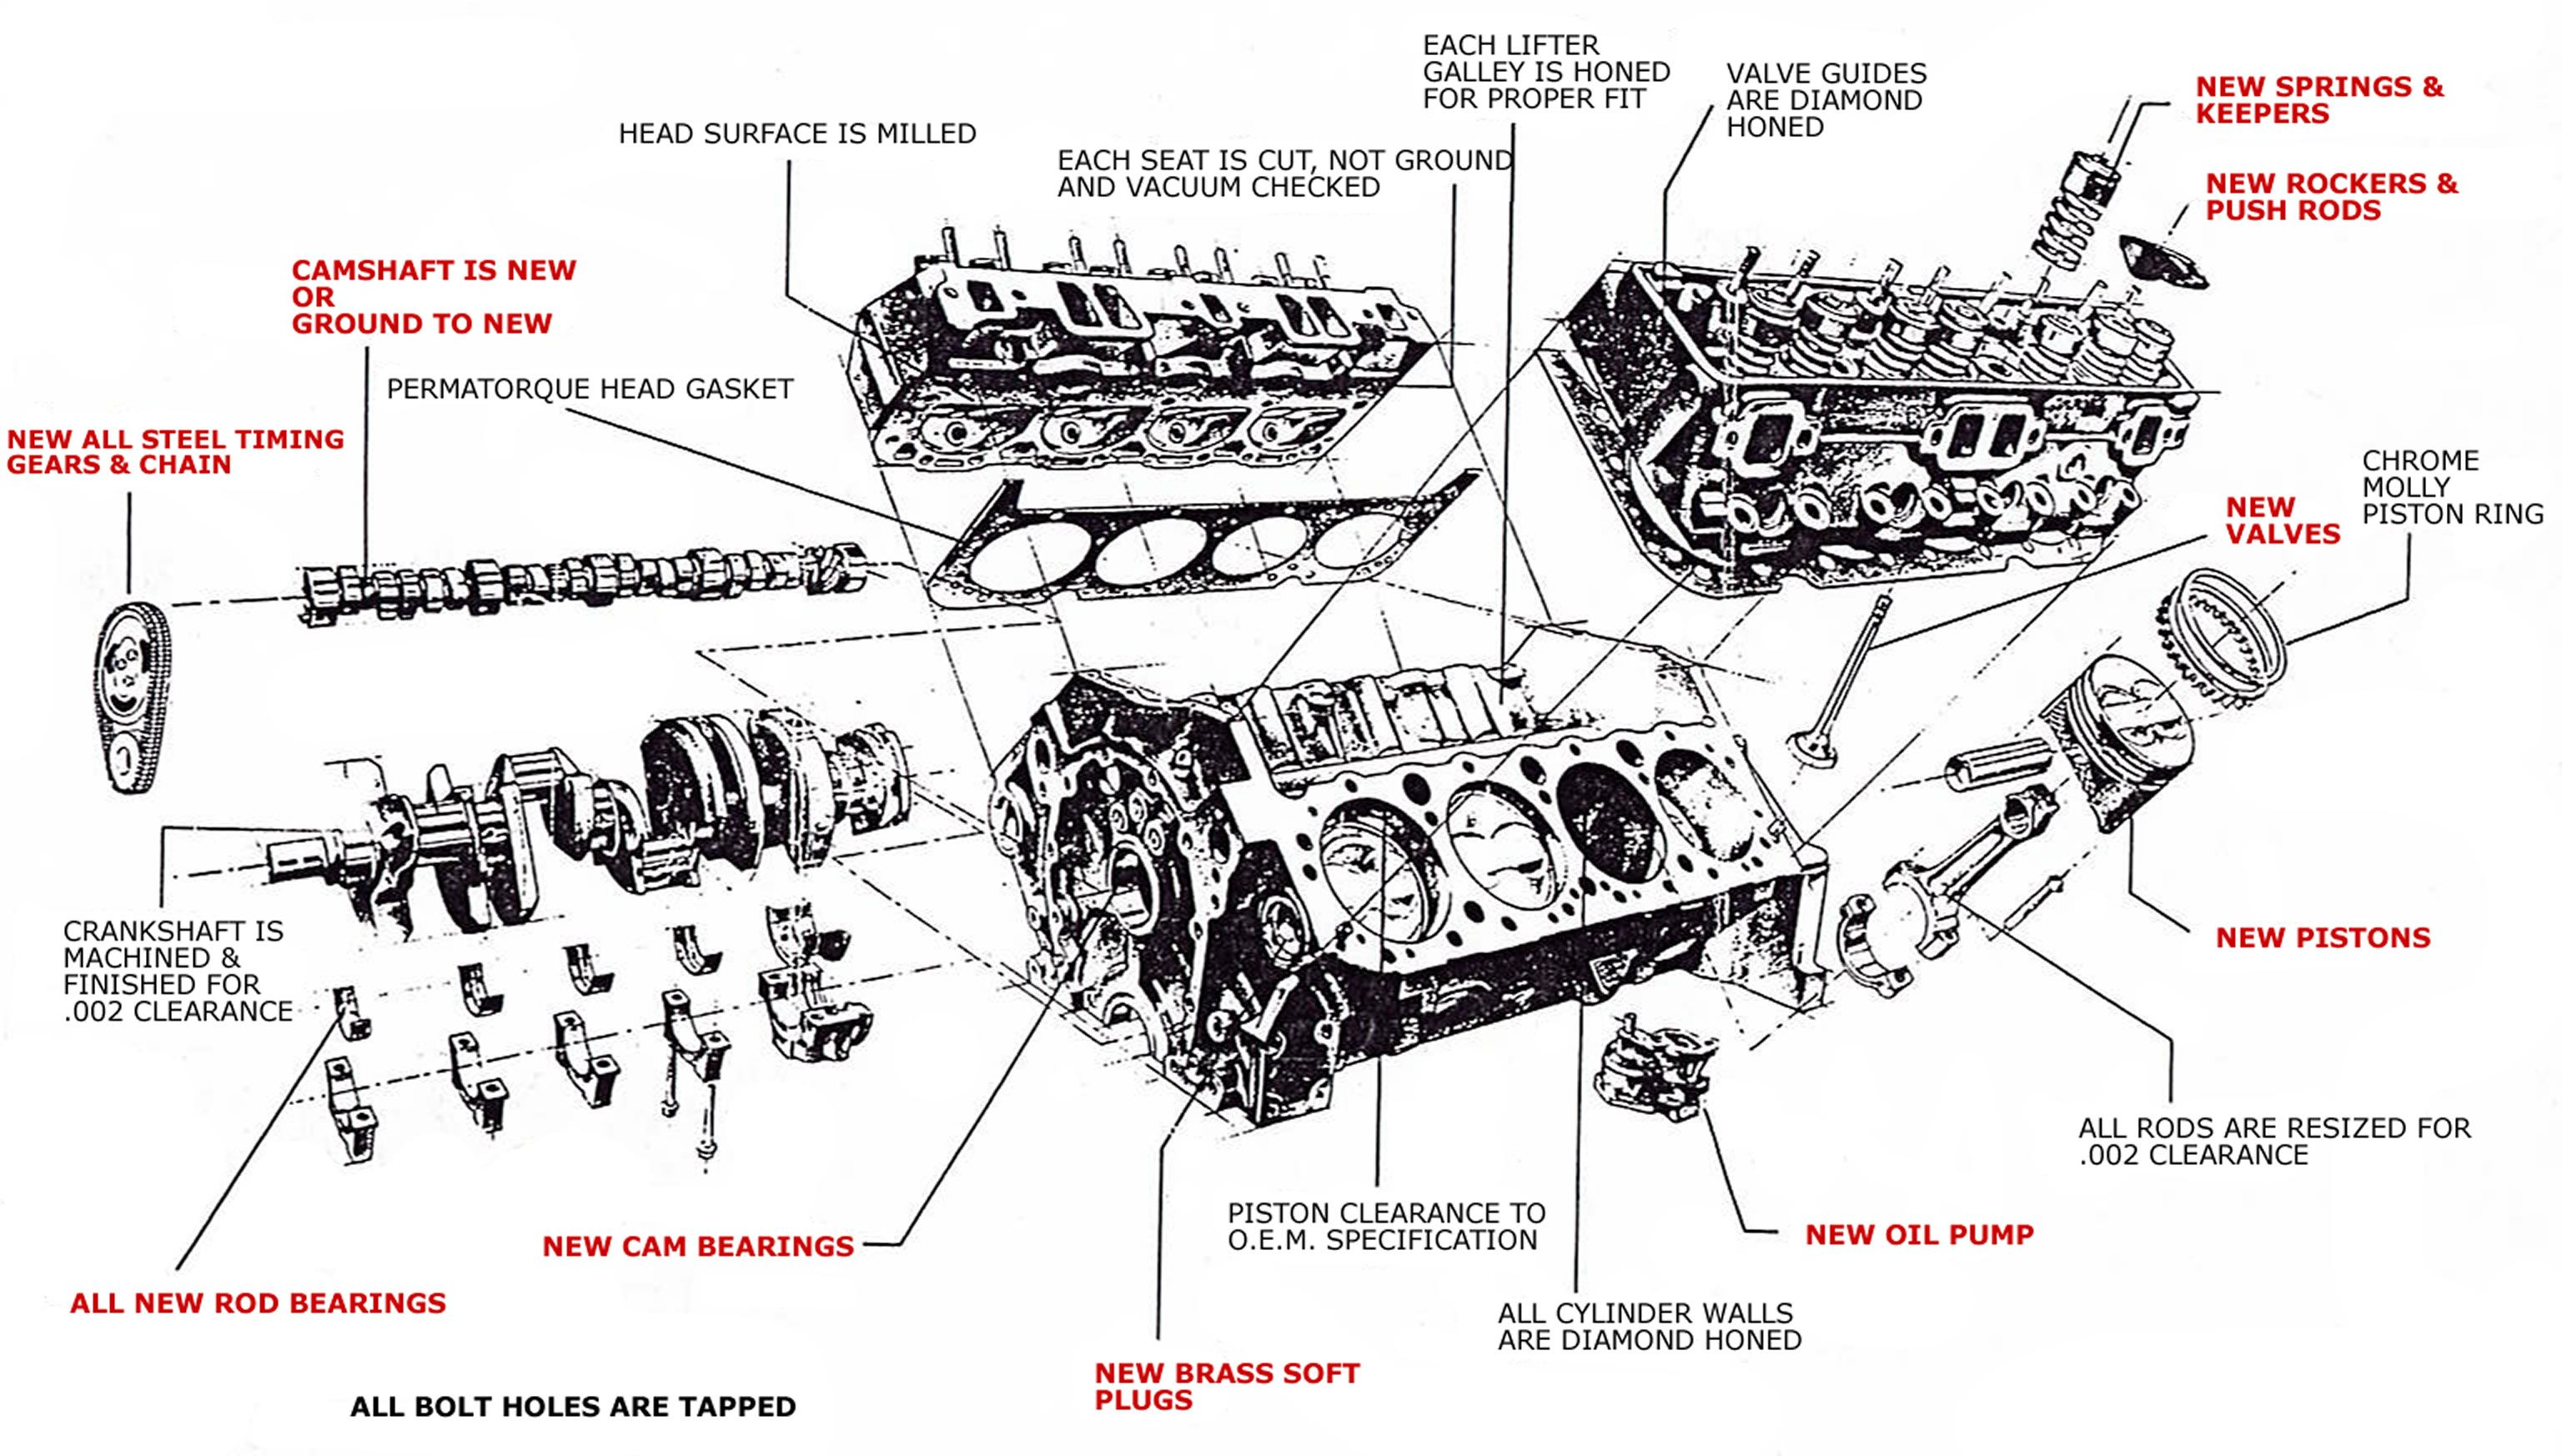 kawasaki lawnmower engines diagram v6 engines diagram with names image result for exploded view of cummins nta 855 | engine ...